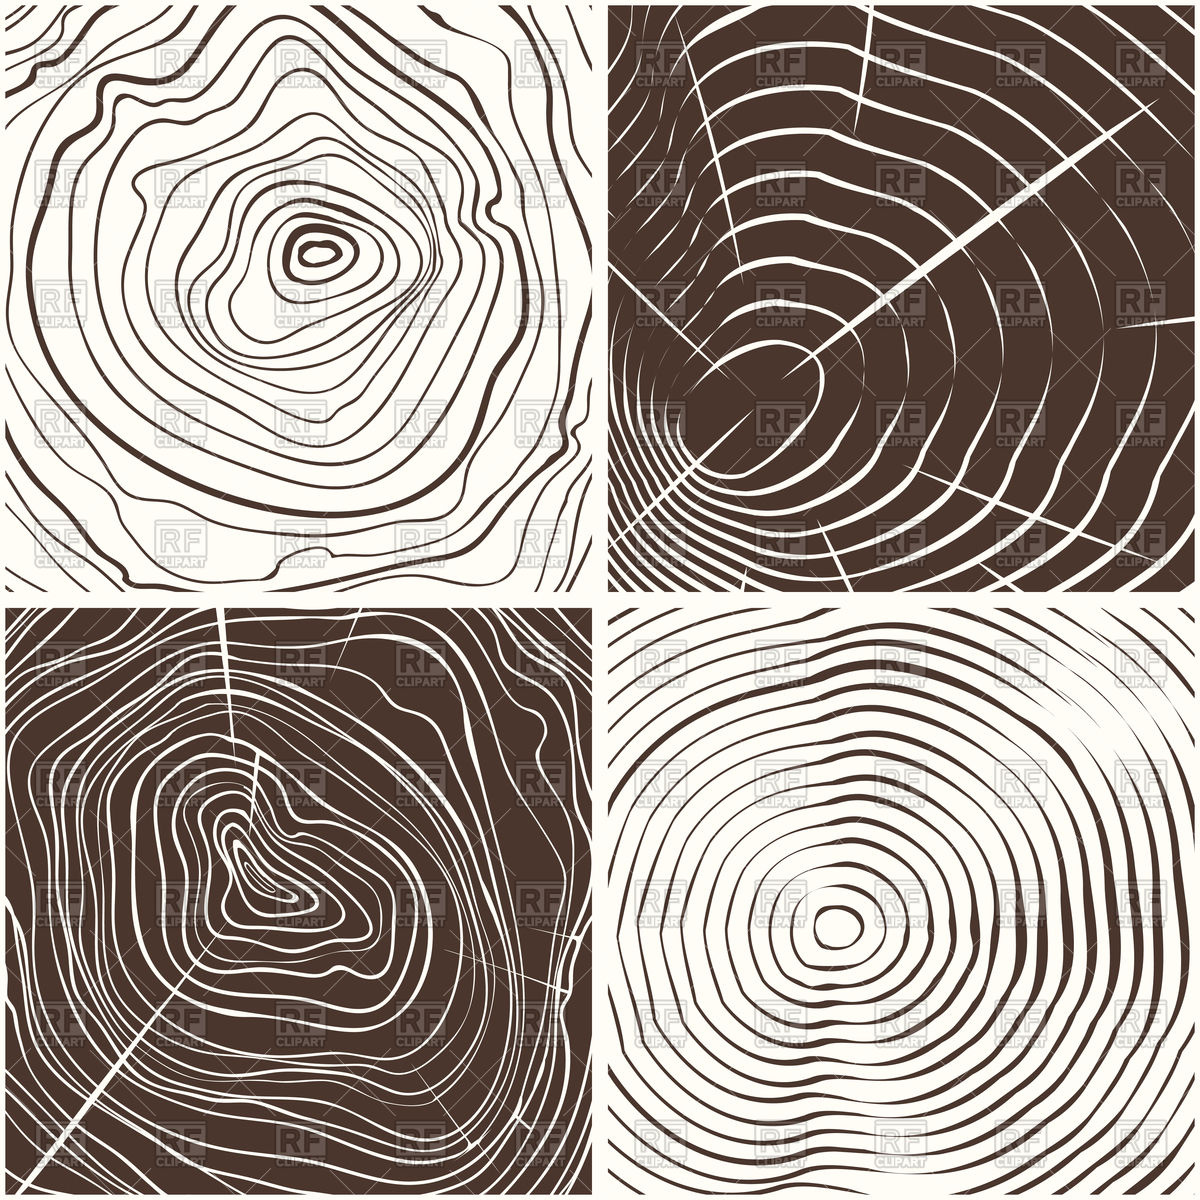 Wood rings texture or tree rings Vector Image #134141.